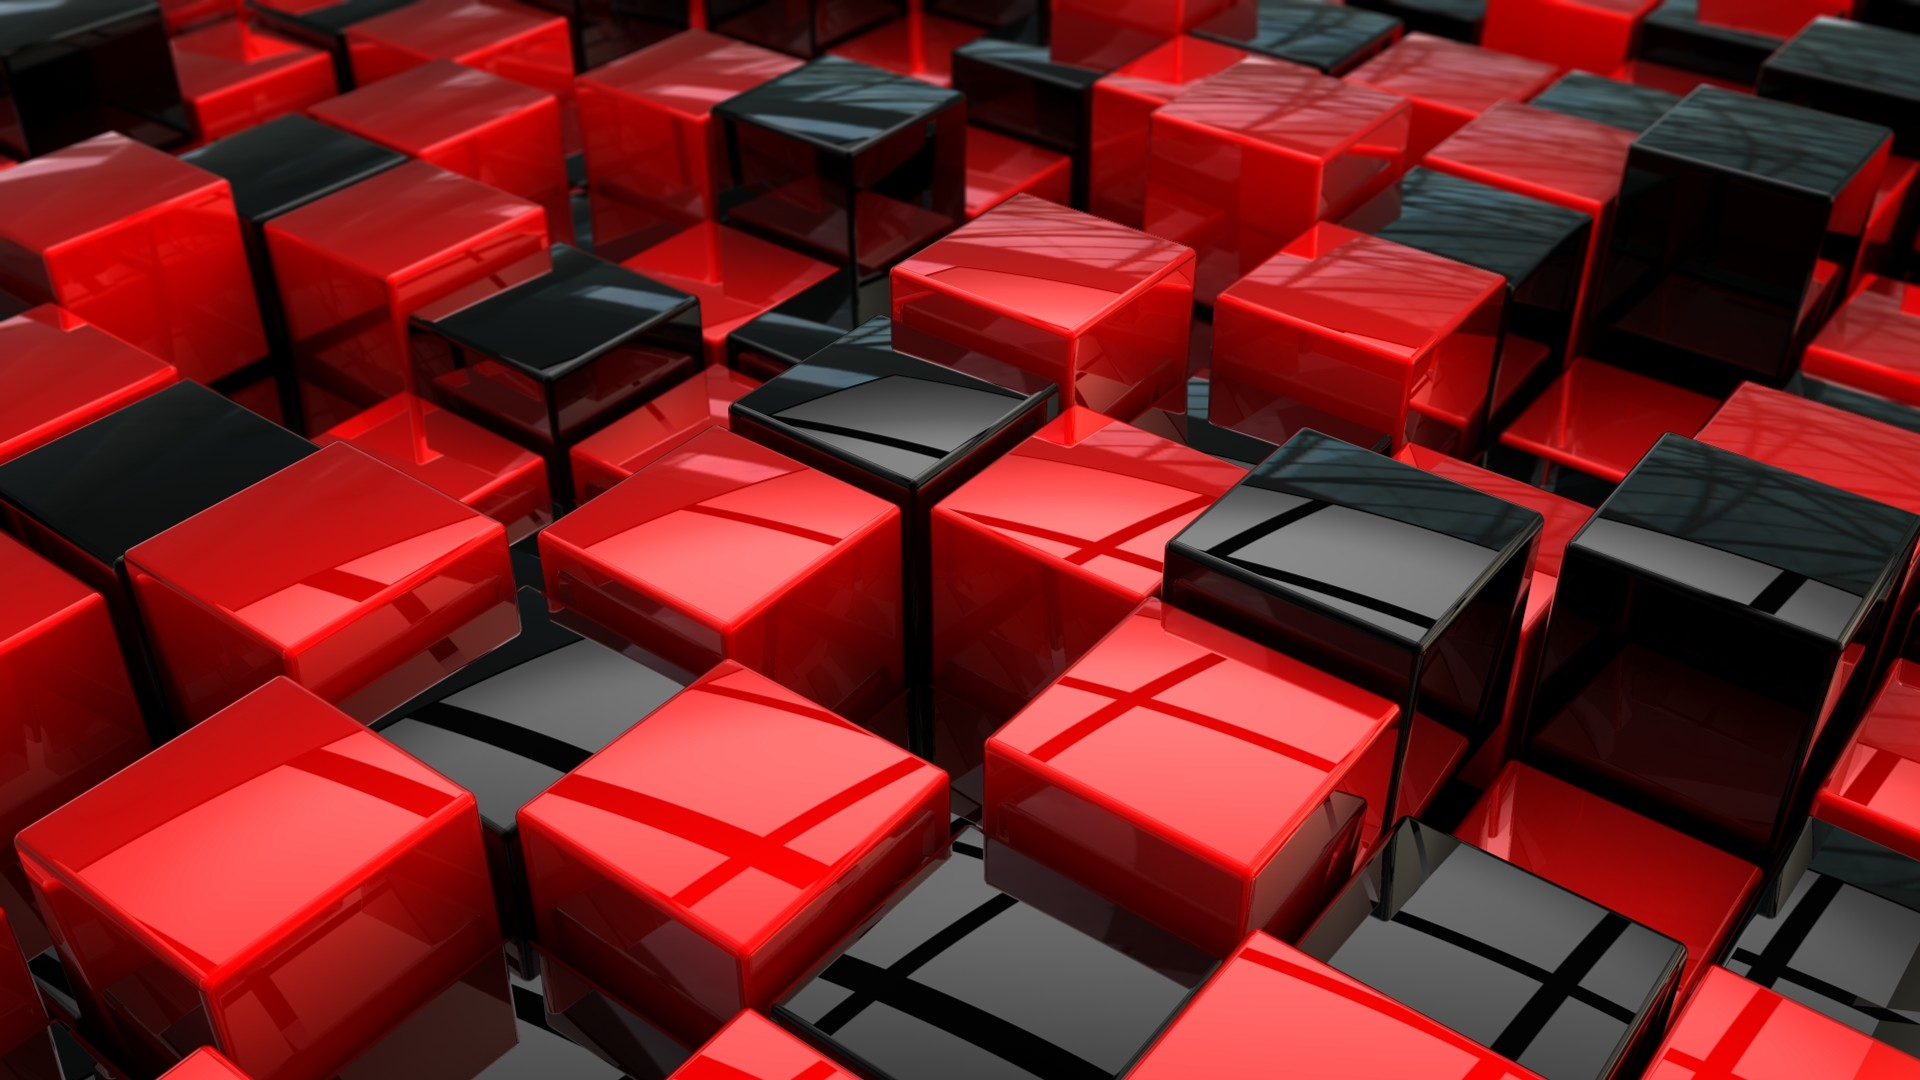 Red and black cubes wallpaper